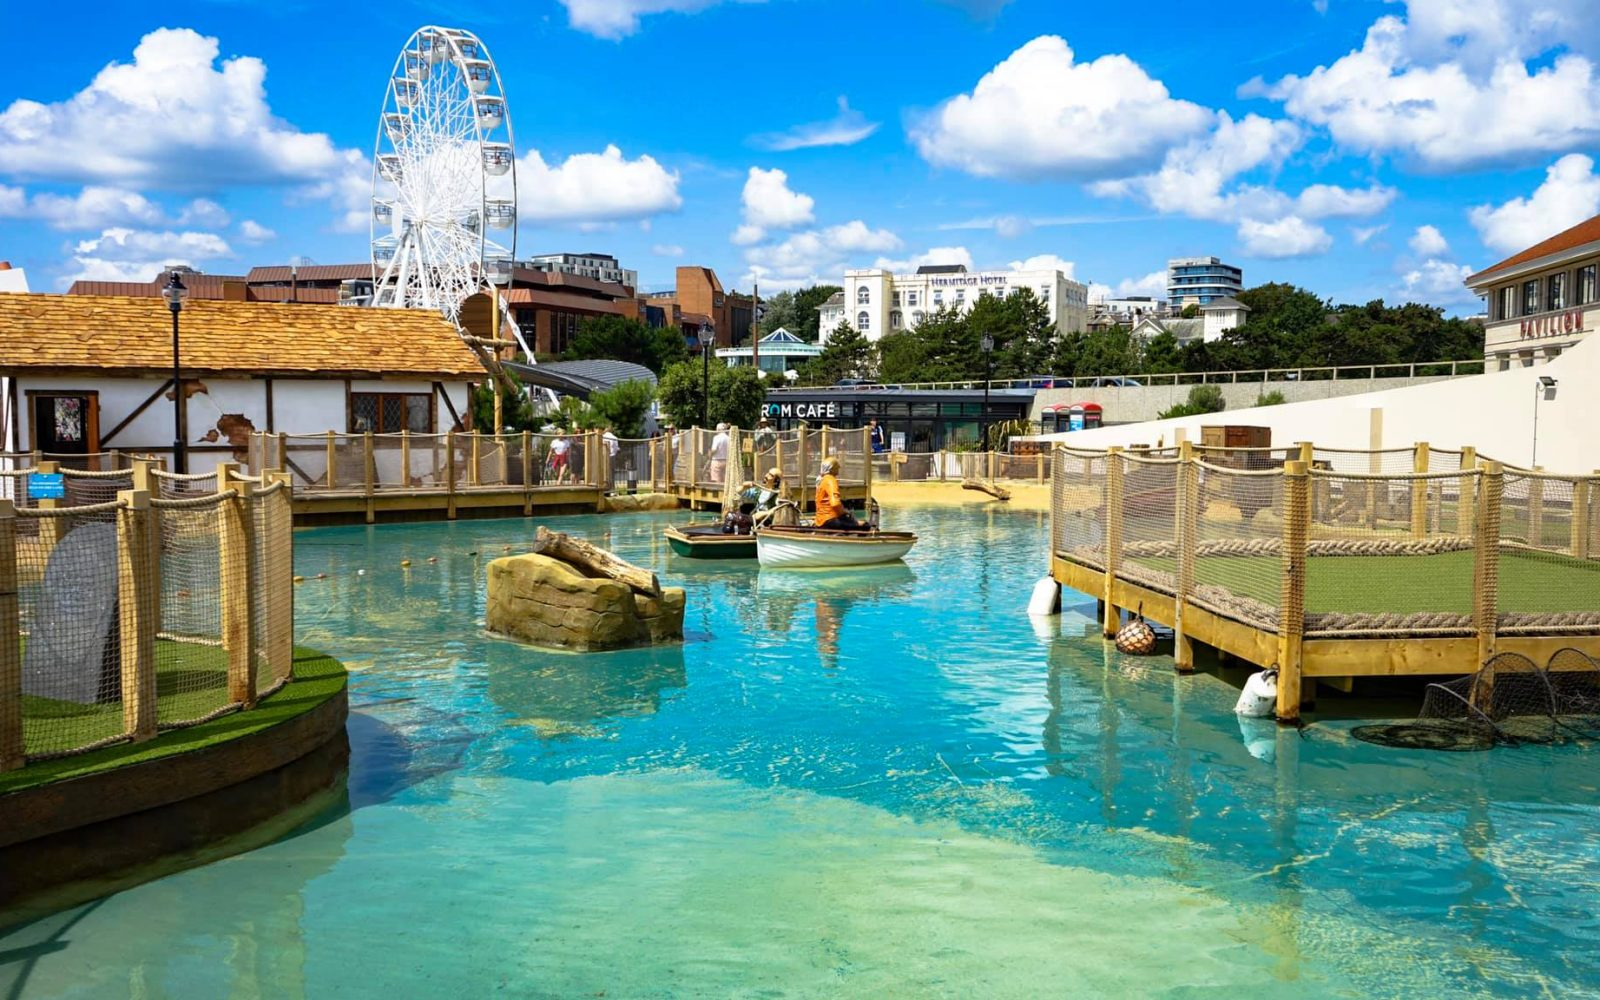 Mini golf course water area with the Bournemouth wheel in the background